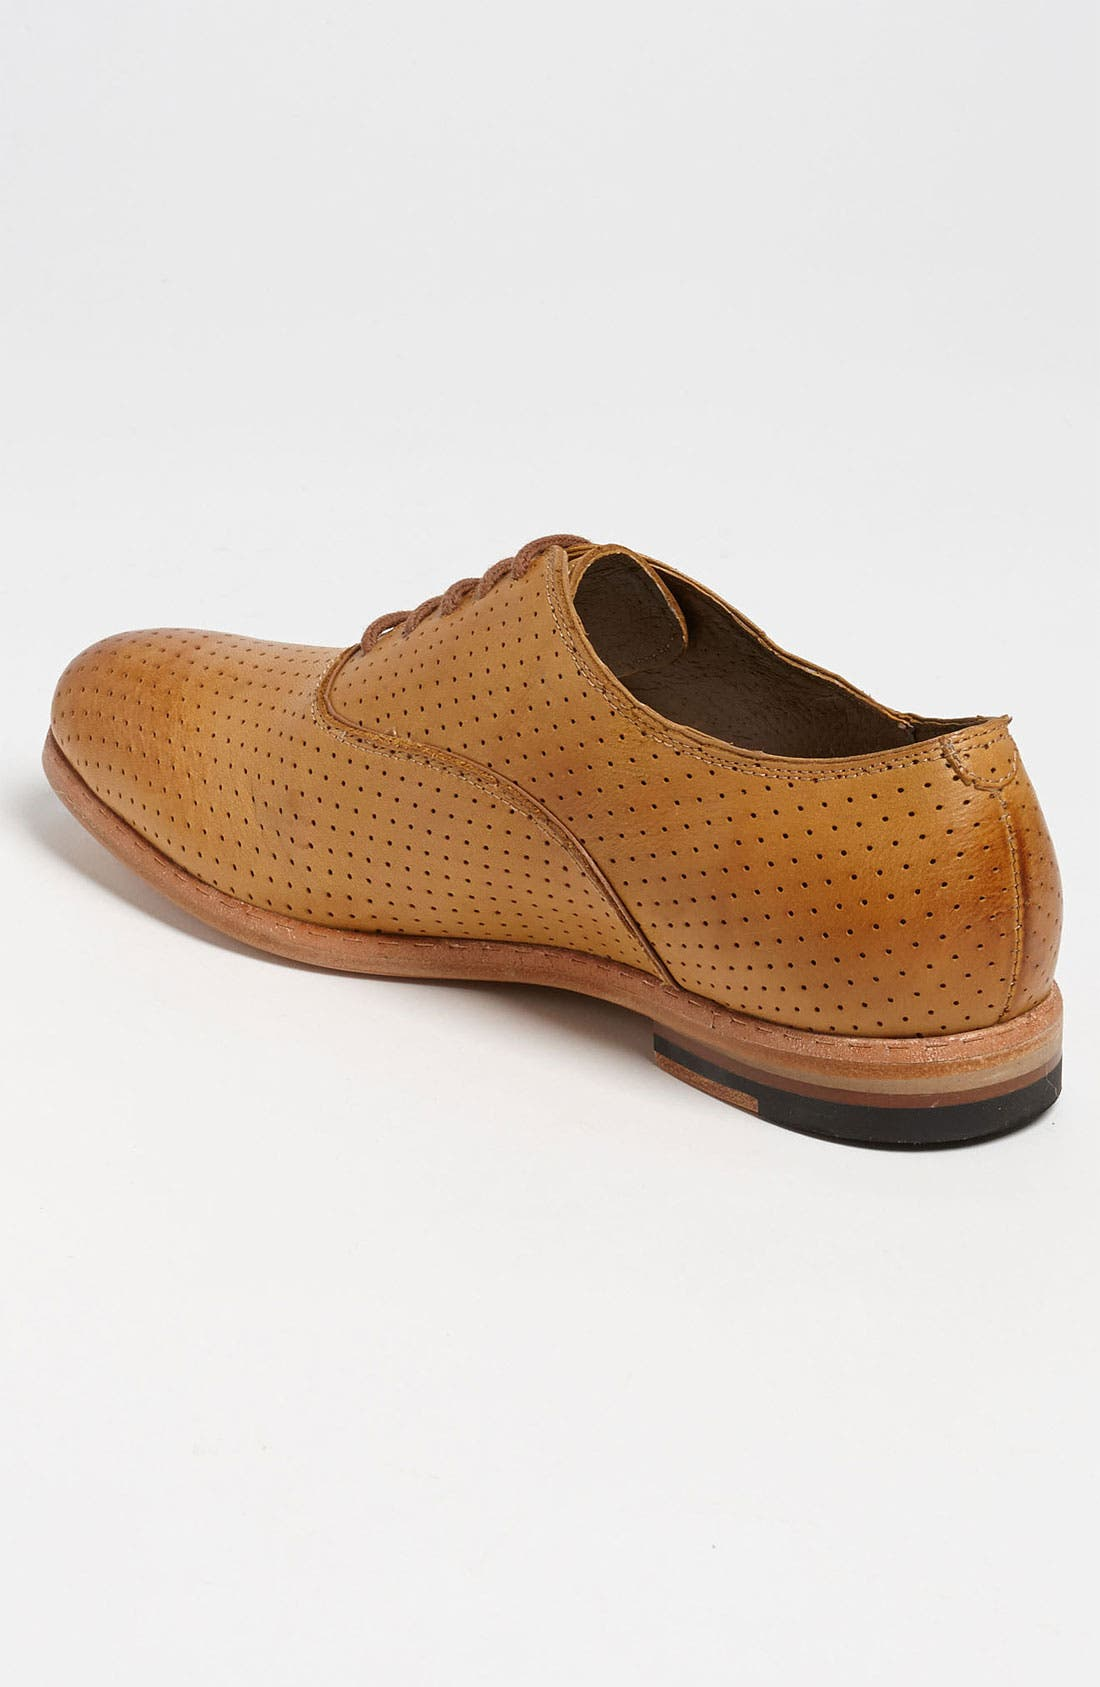 Alternate Image 2  - J.D. Fisk 'Moore' Perforated Oxford